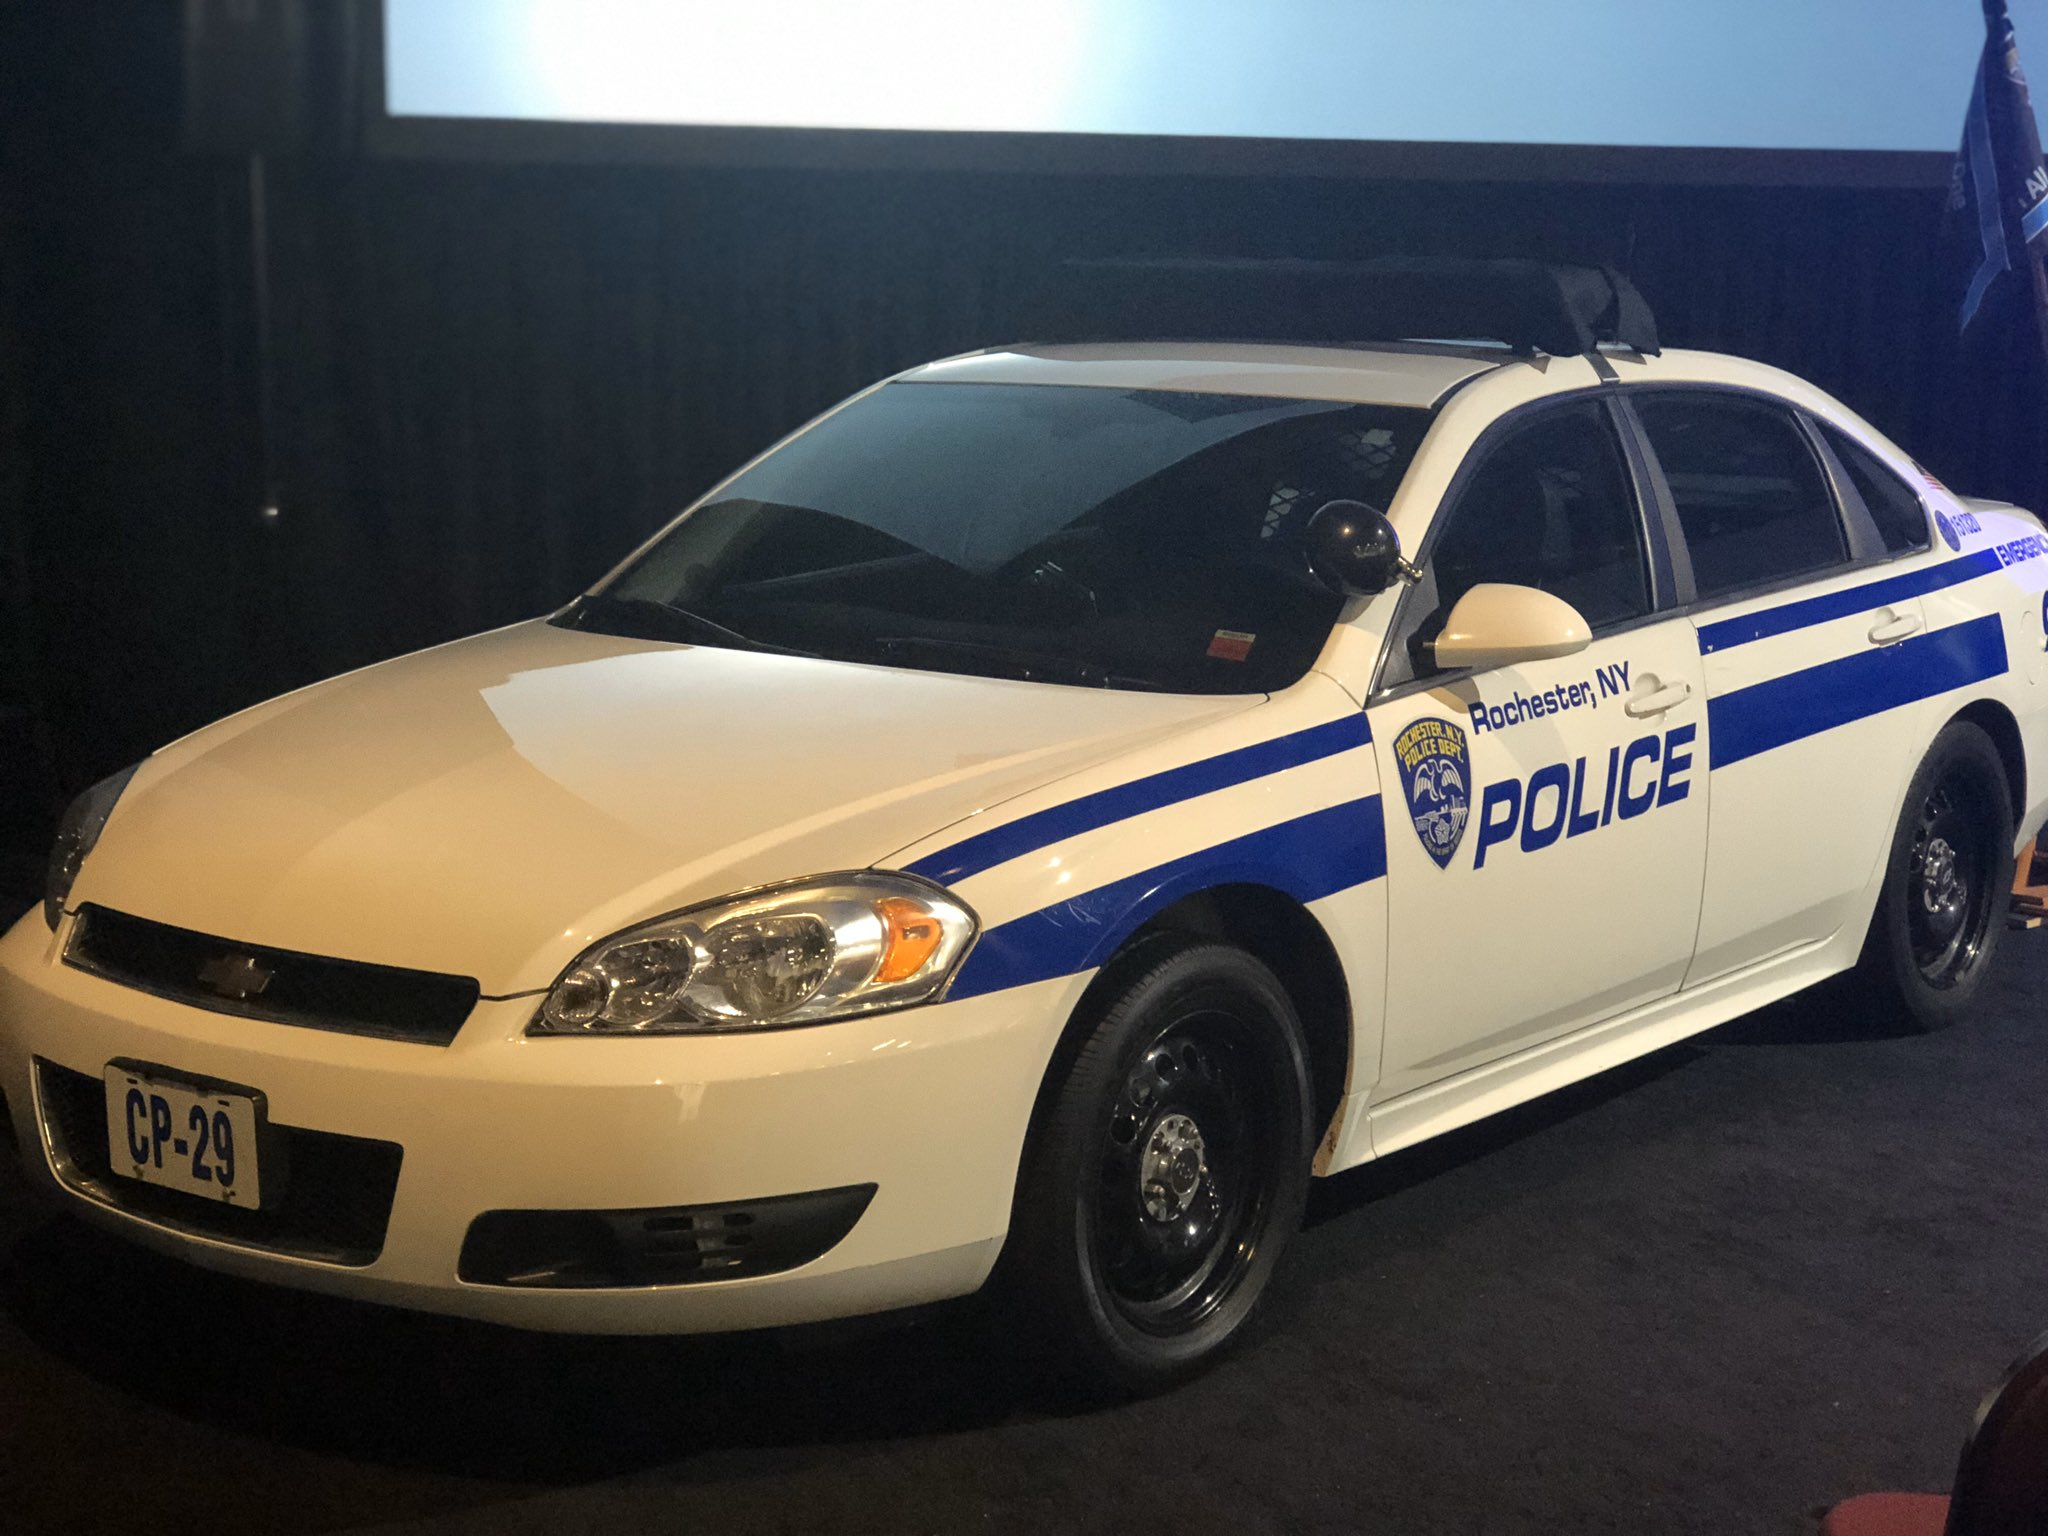 The patrol car used by Rochester Police Officer Manuel 'Manny' Ortiz sits at the front of the main room at the Joseph A. Floreano Rochester Riverside Convention Center on Friday, November 8, 2019 before the start of the memorial service. (WHAM photo)